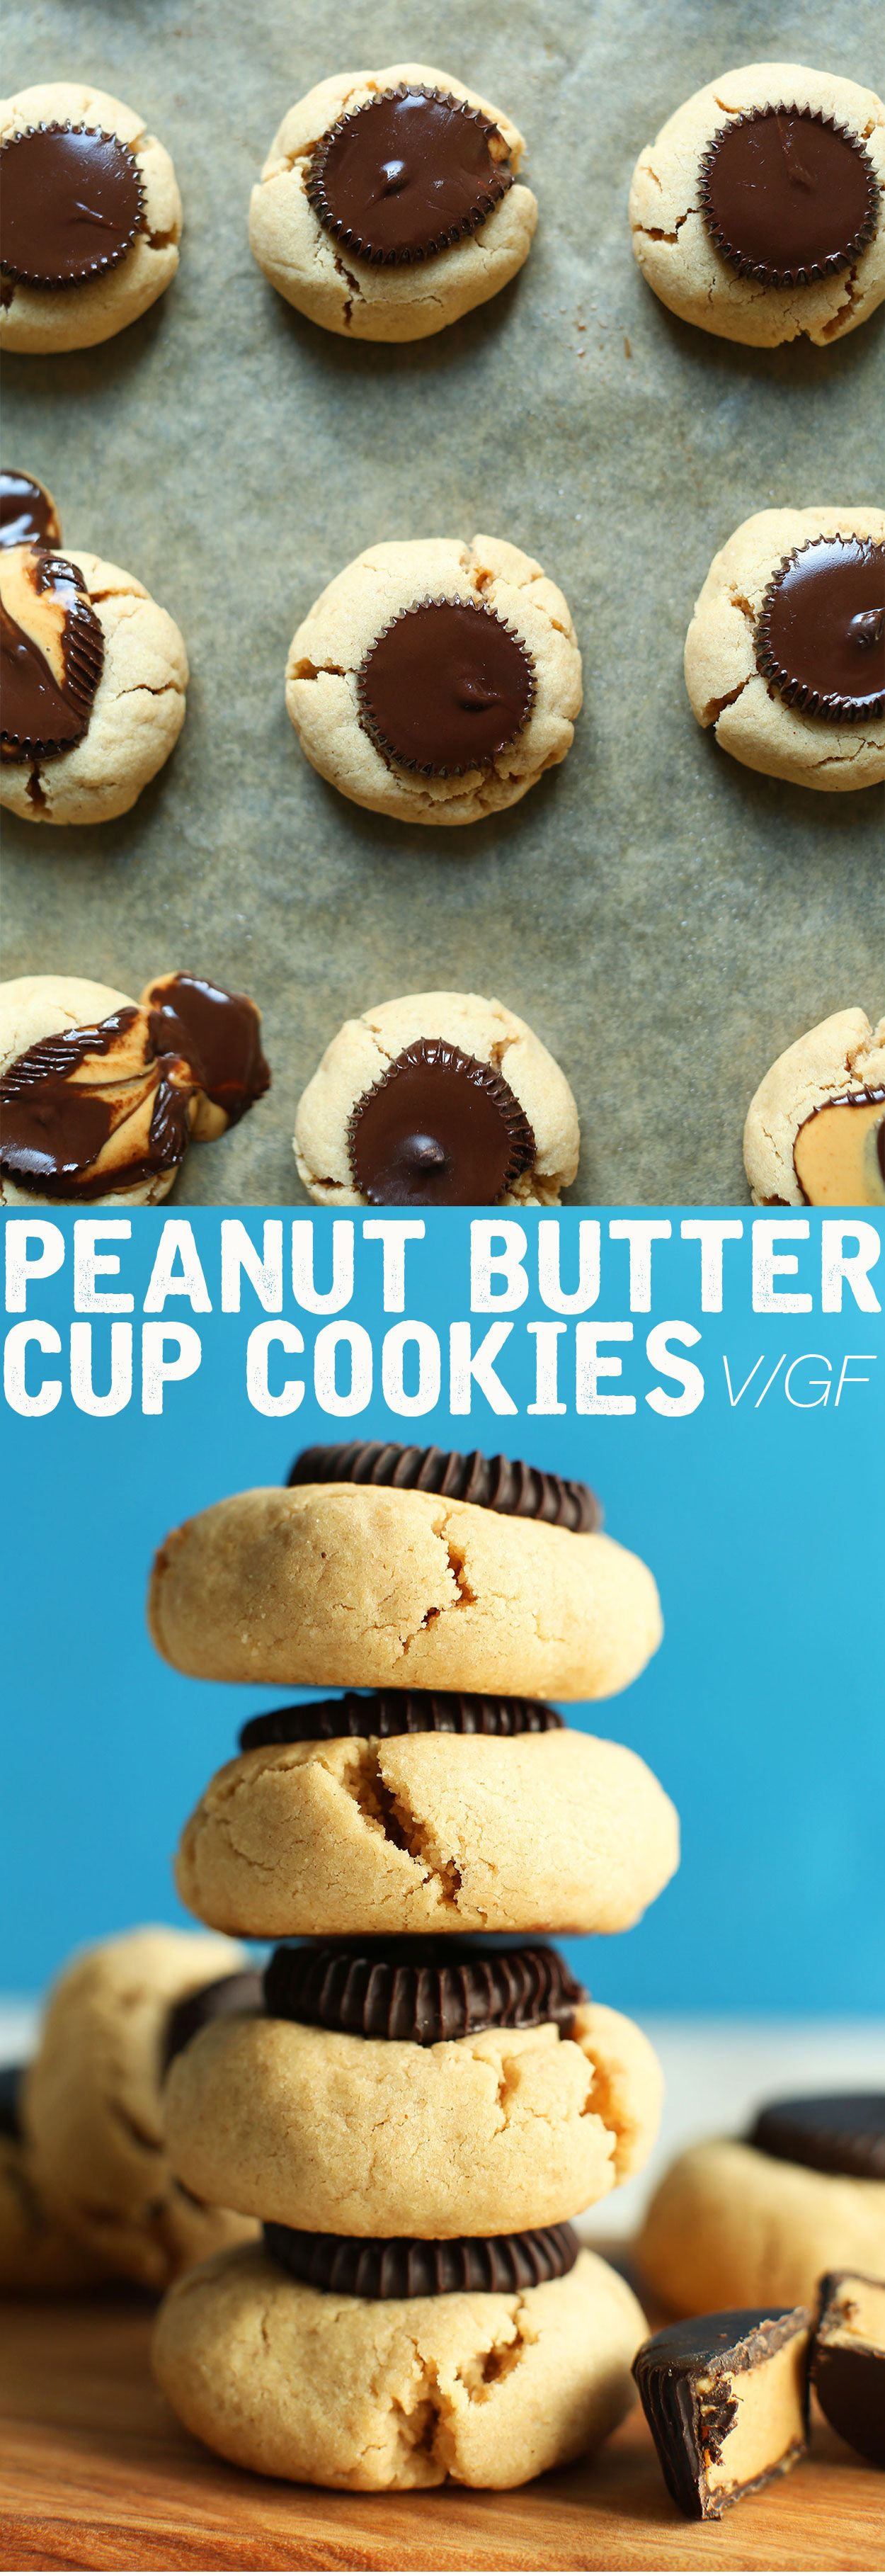 PERFECT Peanut Butter Cup Cookies in 1 BOWL